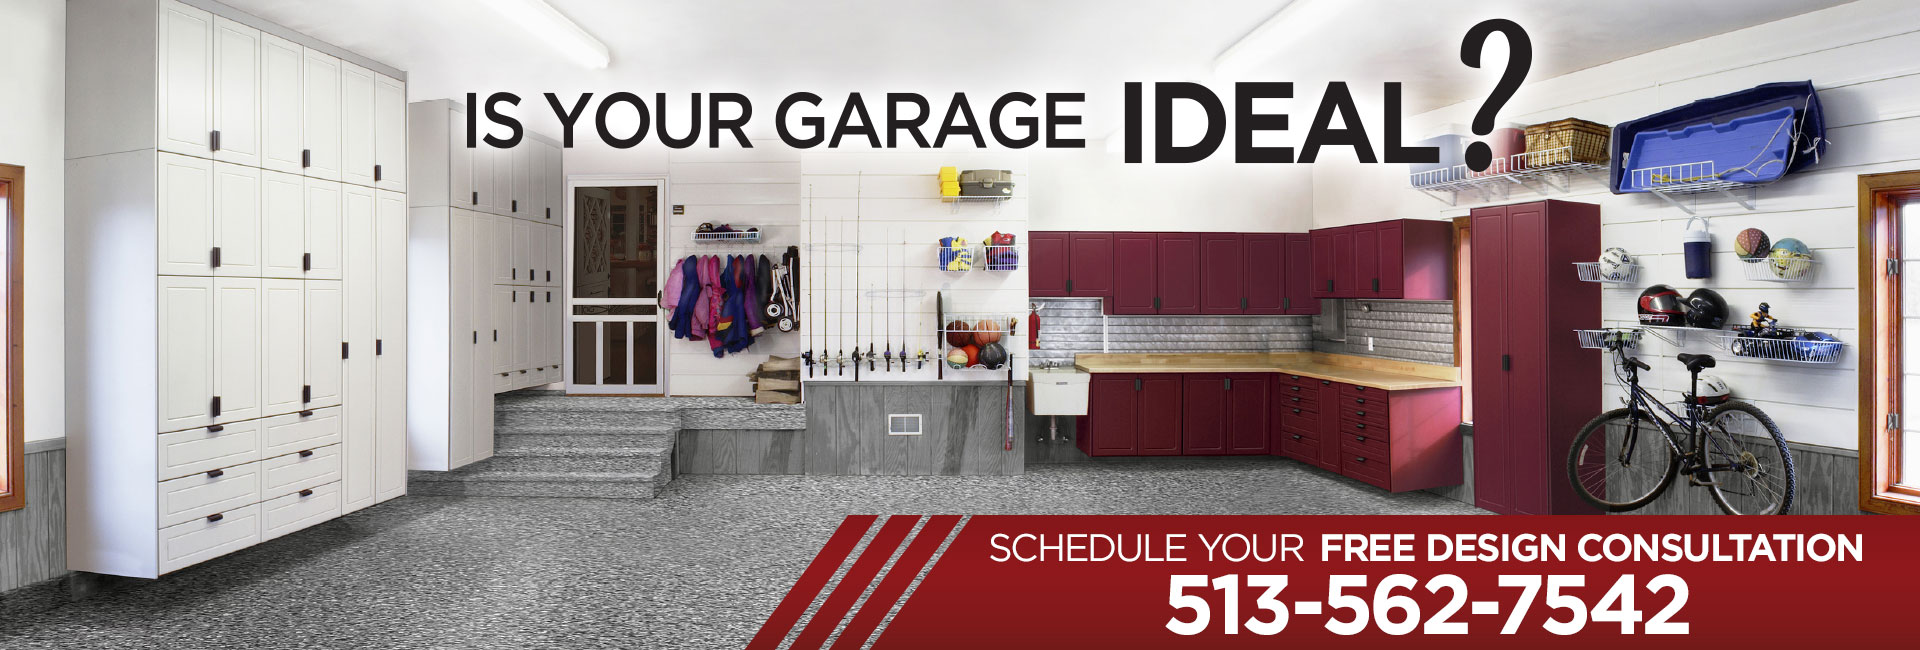 Garage Cabinets By George Home Ideal Garage Solutions